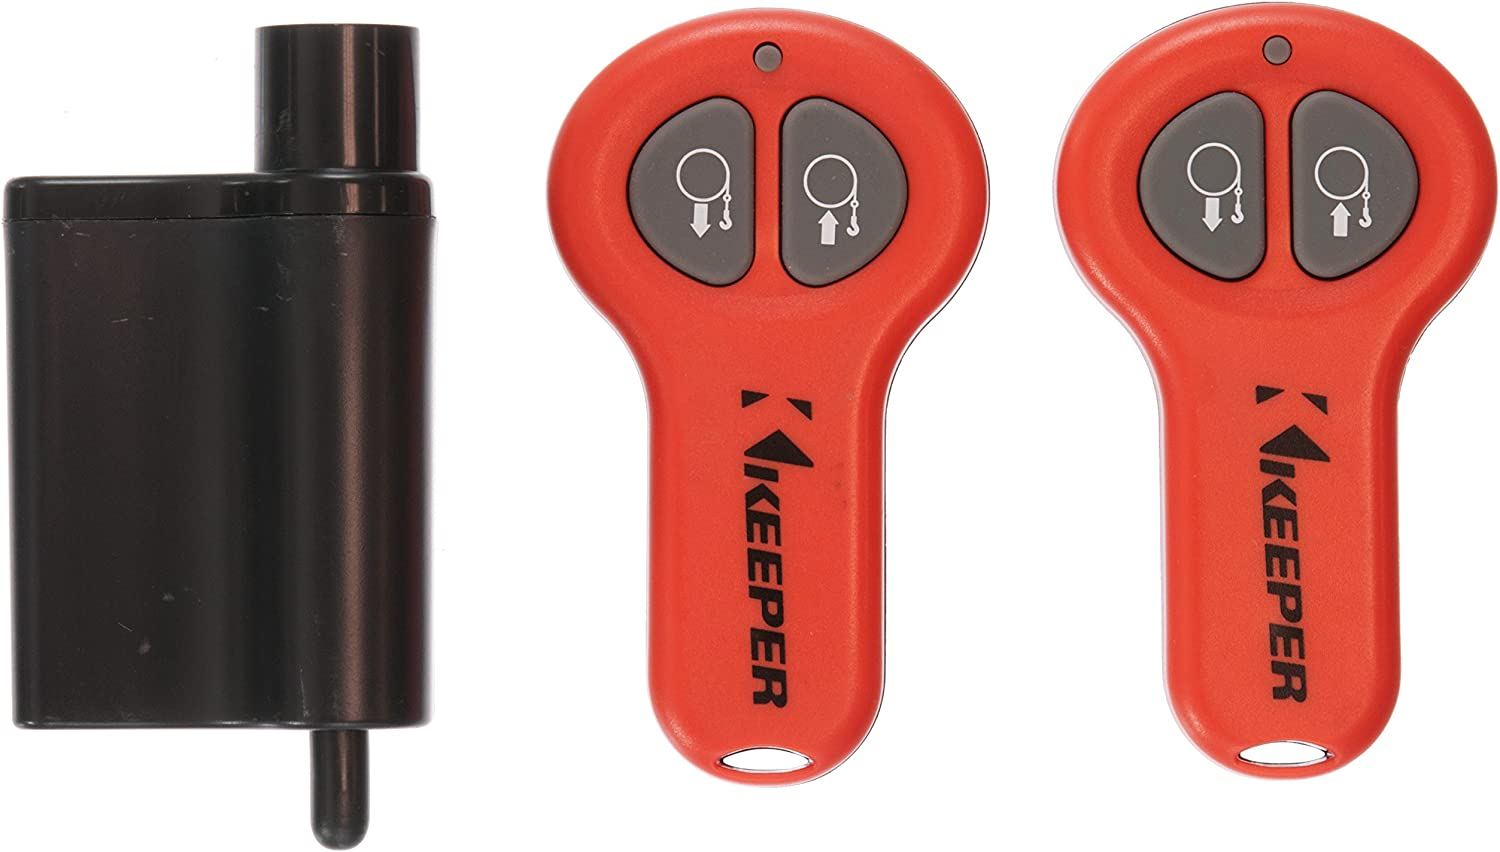 KEEPER KTA14126 Wireless Atlanta Mall Remote Max 76% OFF Switch KW for KT4000 and Winch